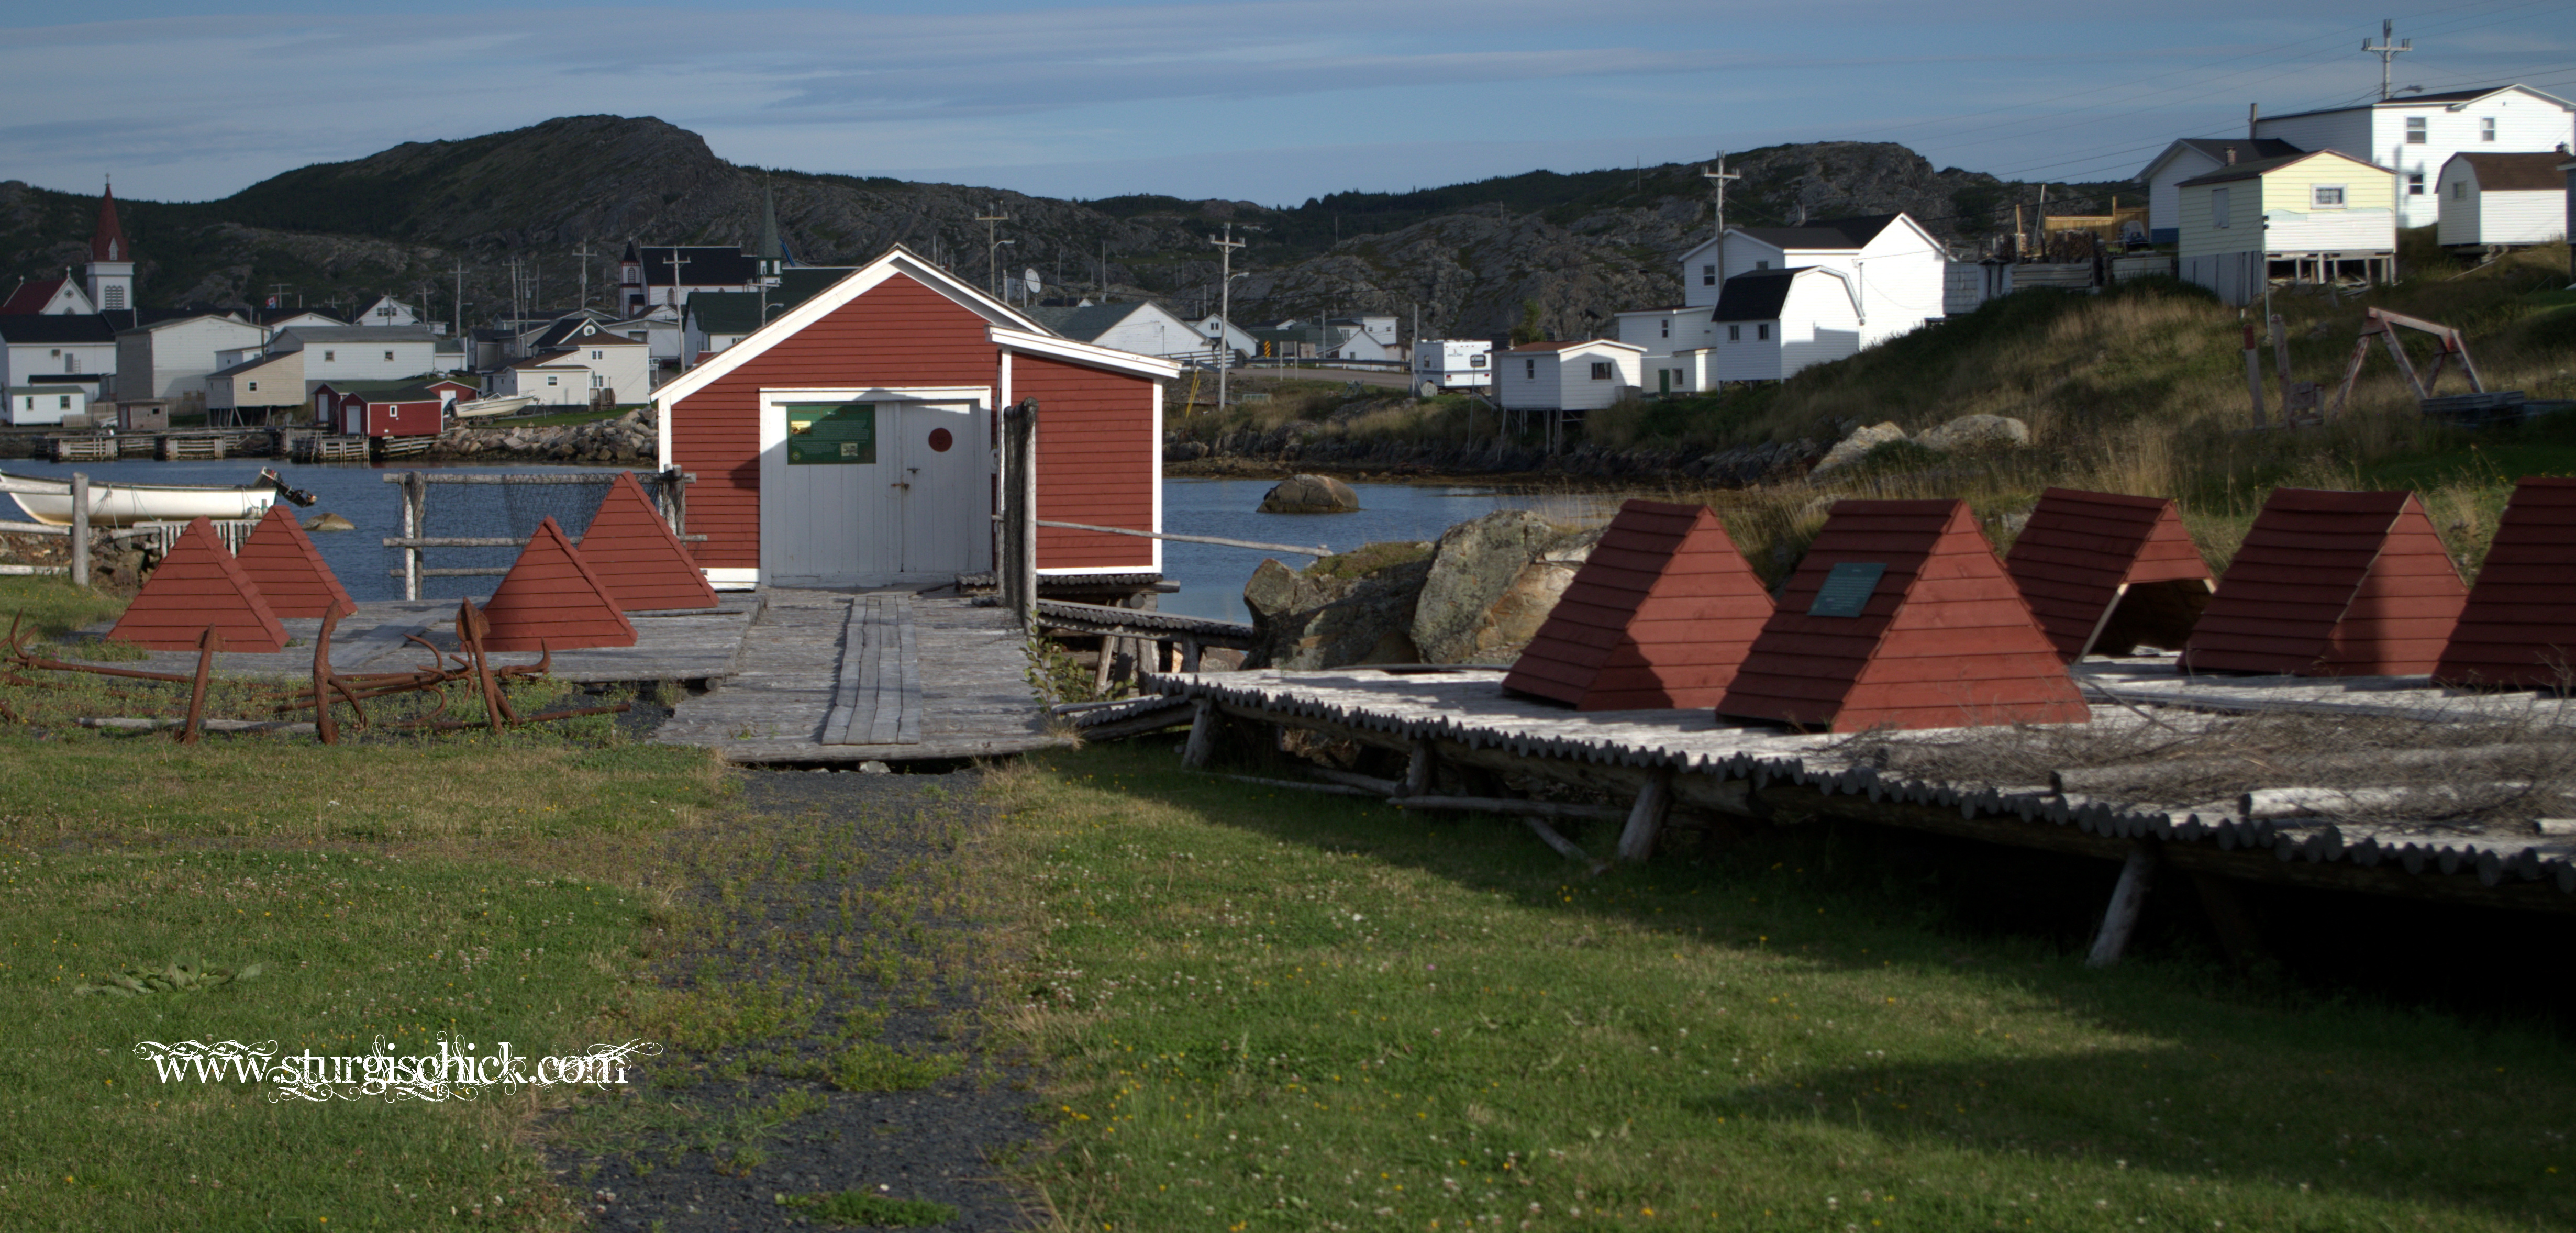 All Around The Circle Twillingate Fogo Sturgis Chick